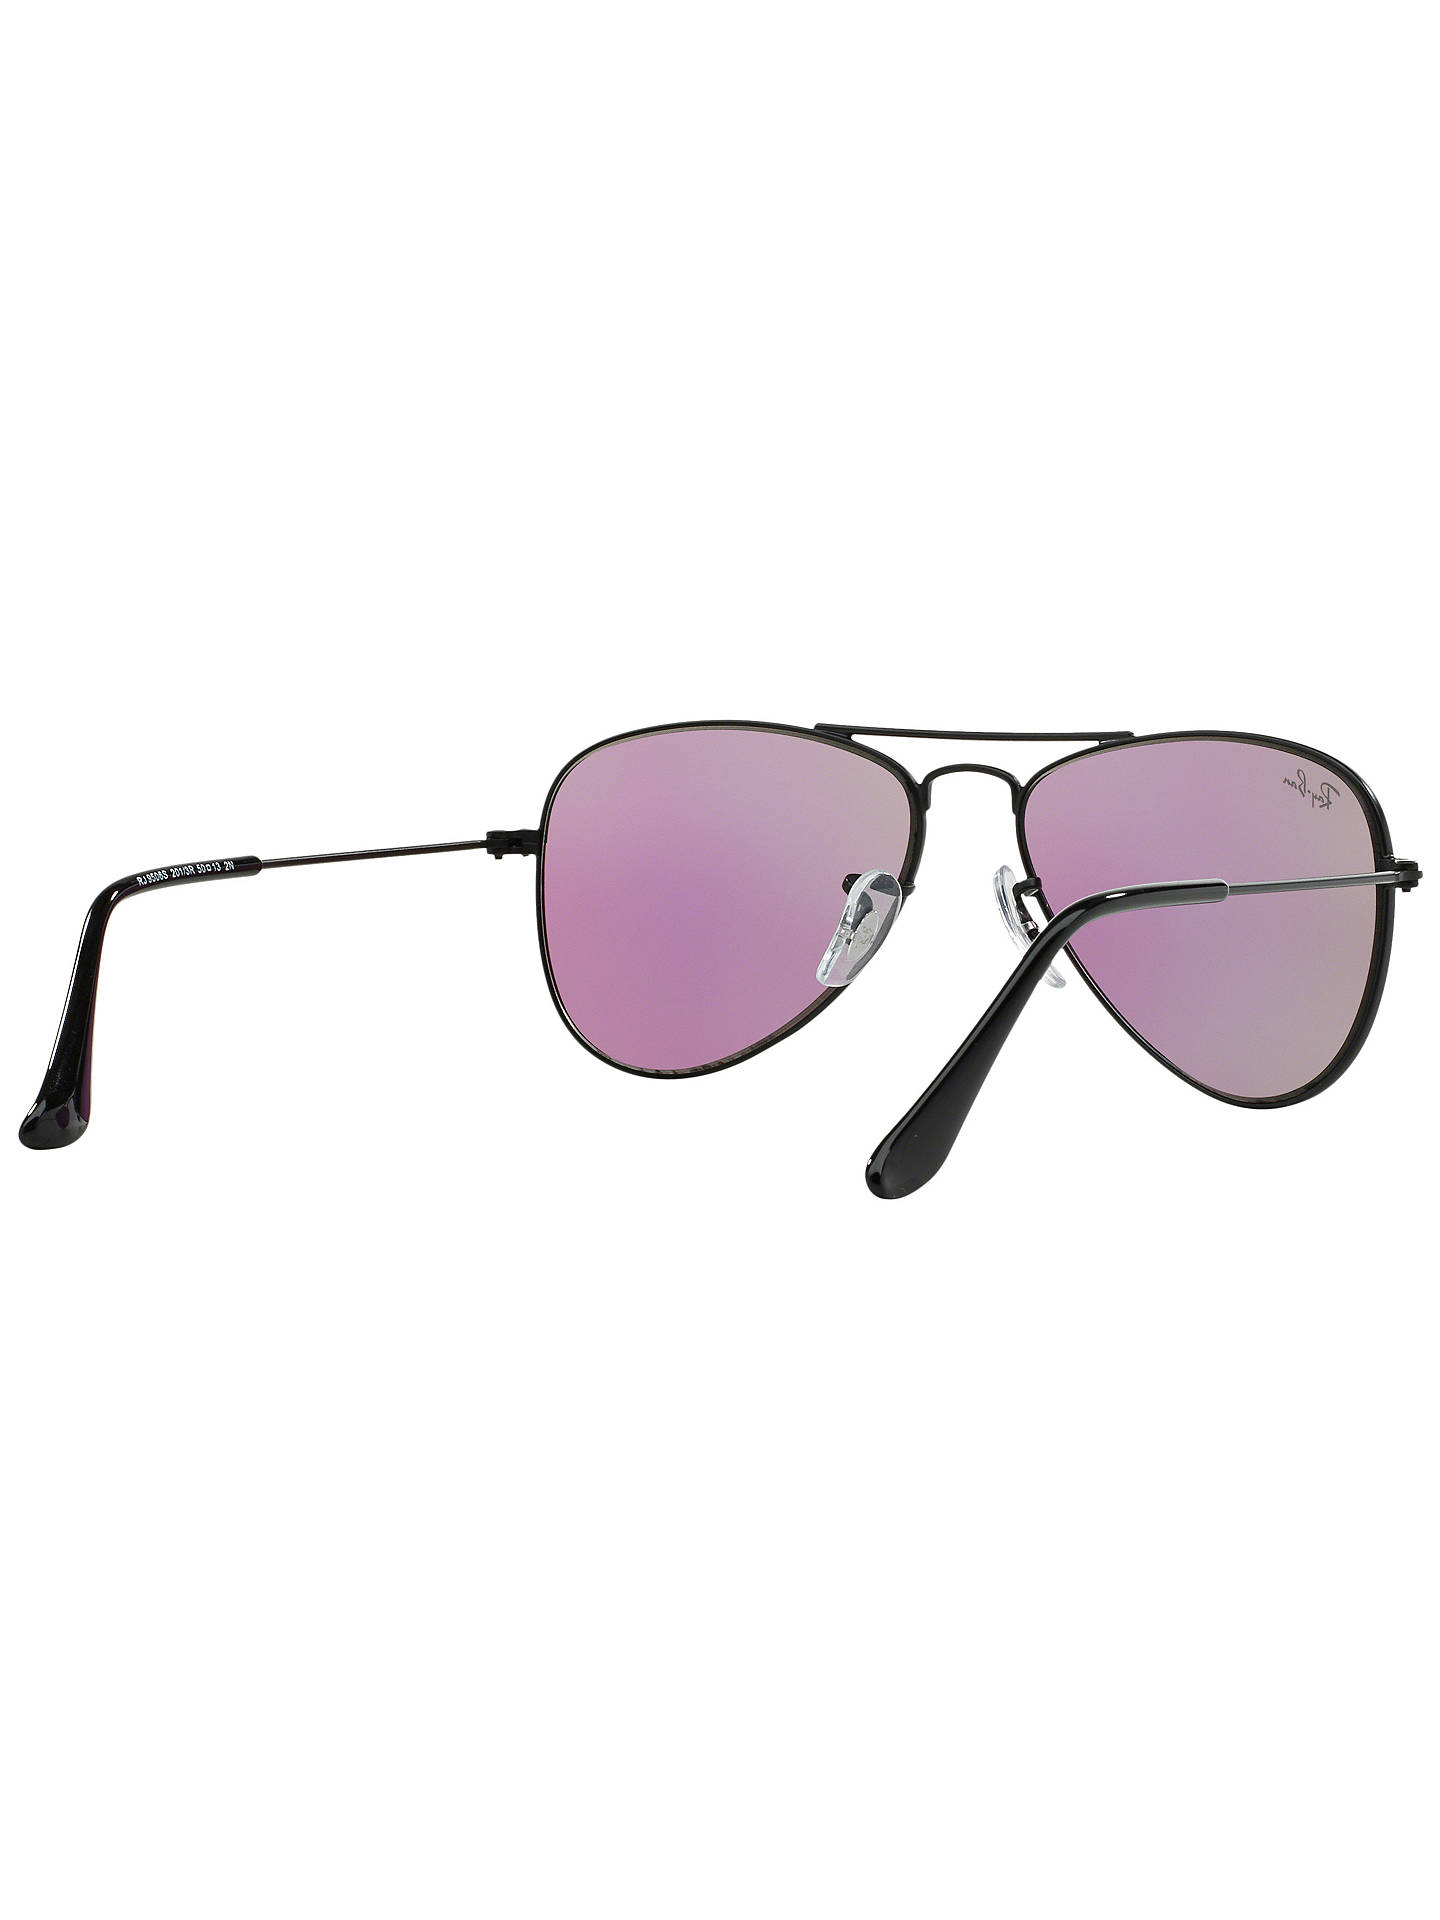 Buy Ray-Ban Junior RJ9506S Aviator Sunglasses, Black/Green Online at johnlewis.com